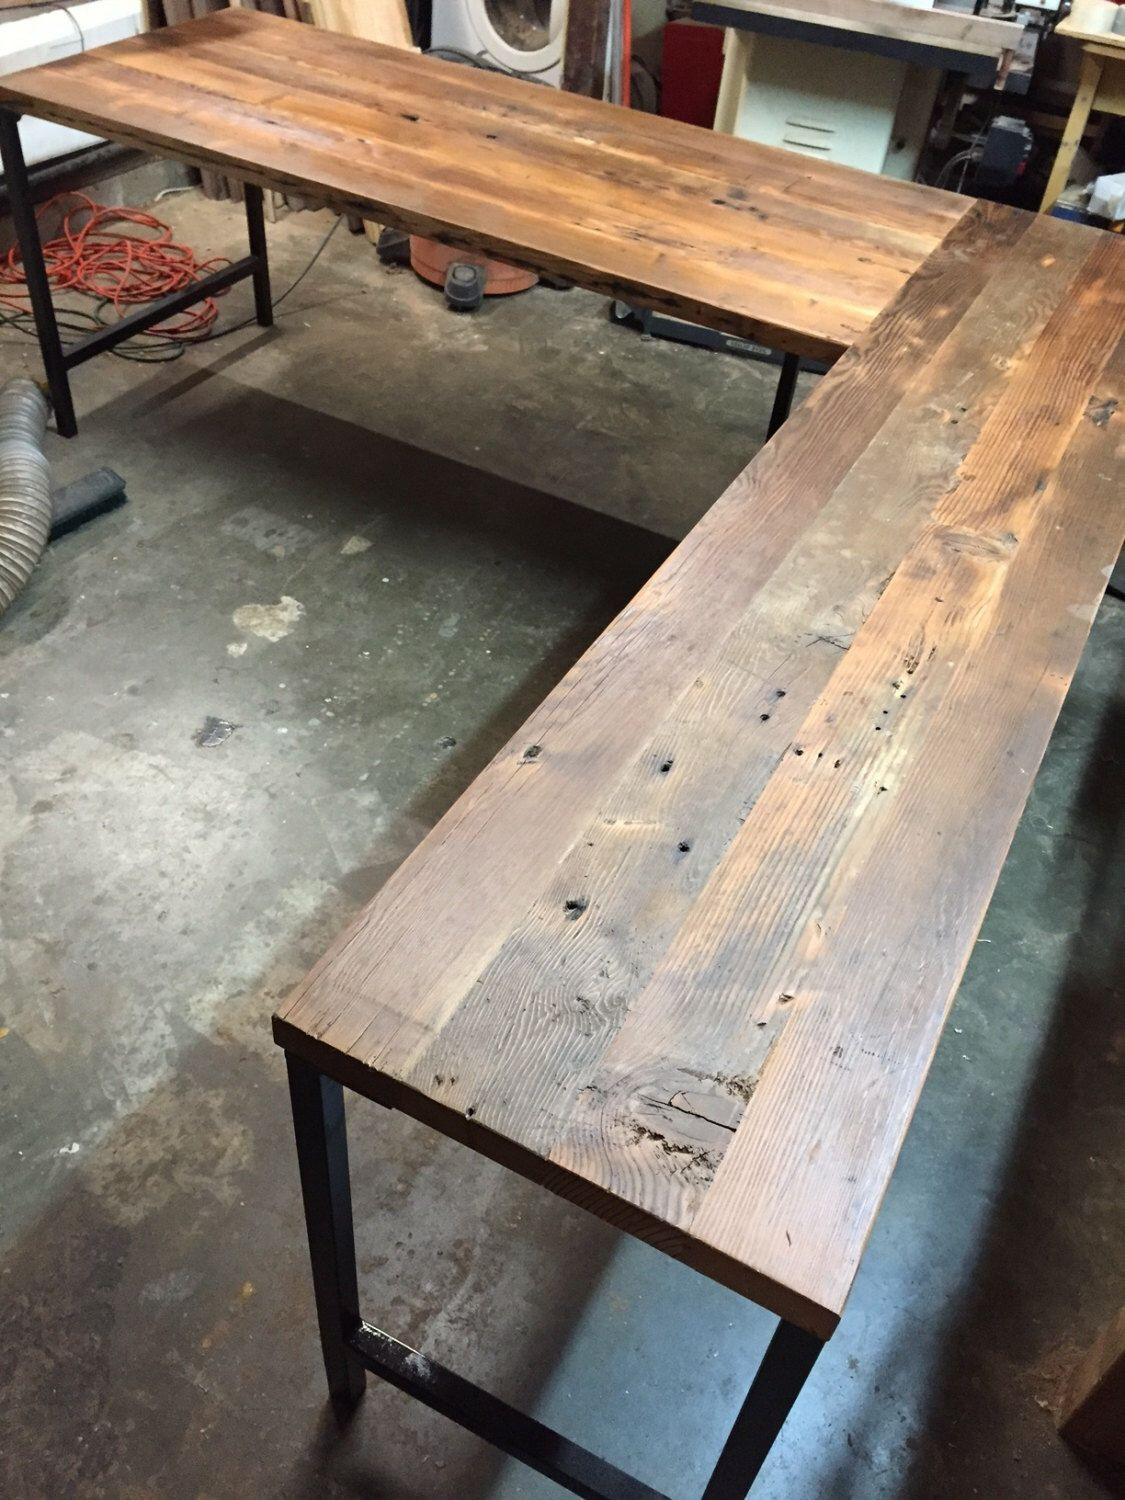 Best ideas about Reclaimed Wood Desk DIY . Save or Pin L Shaped Desk Reclaimed Wood Desk Industrial Modern Now.